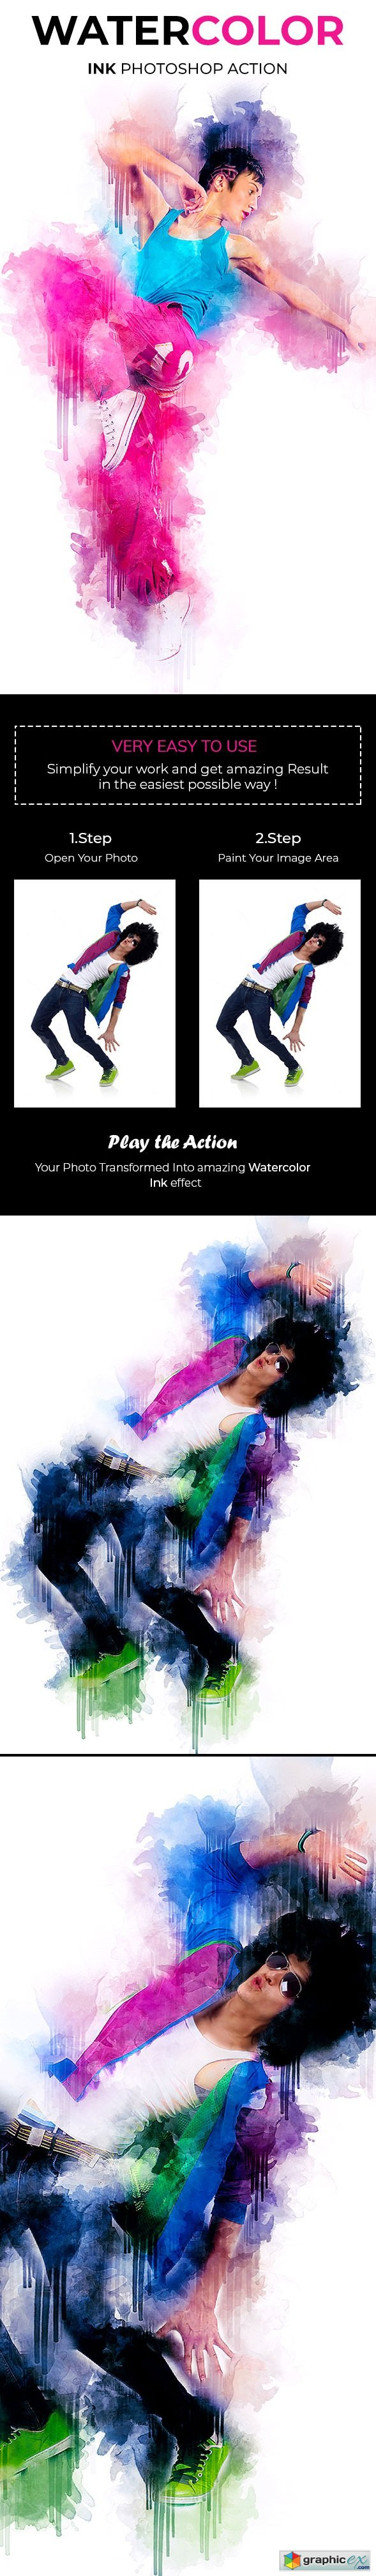 Watercolor Ink Photoshop Action 21189387